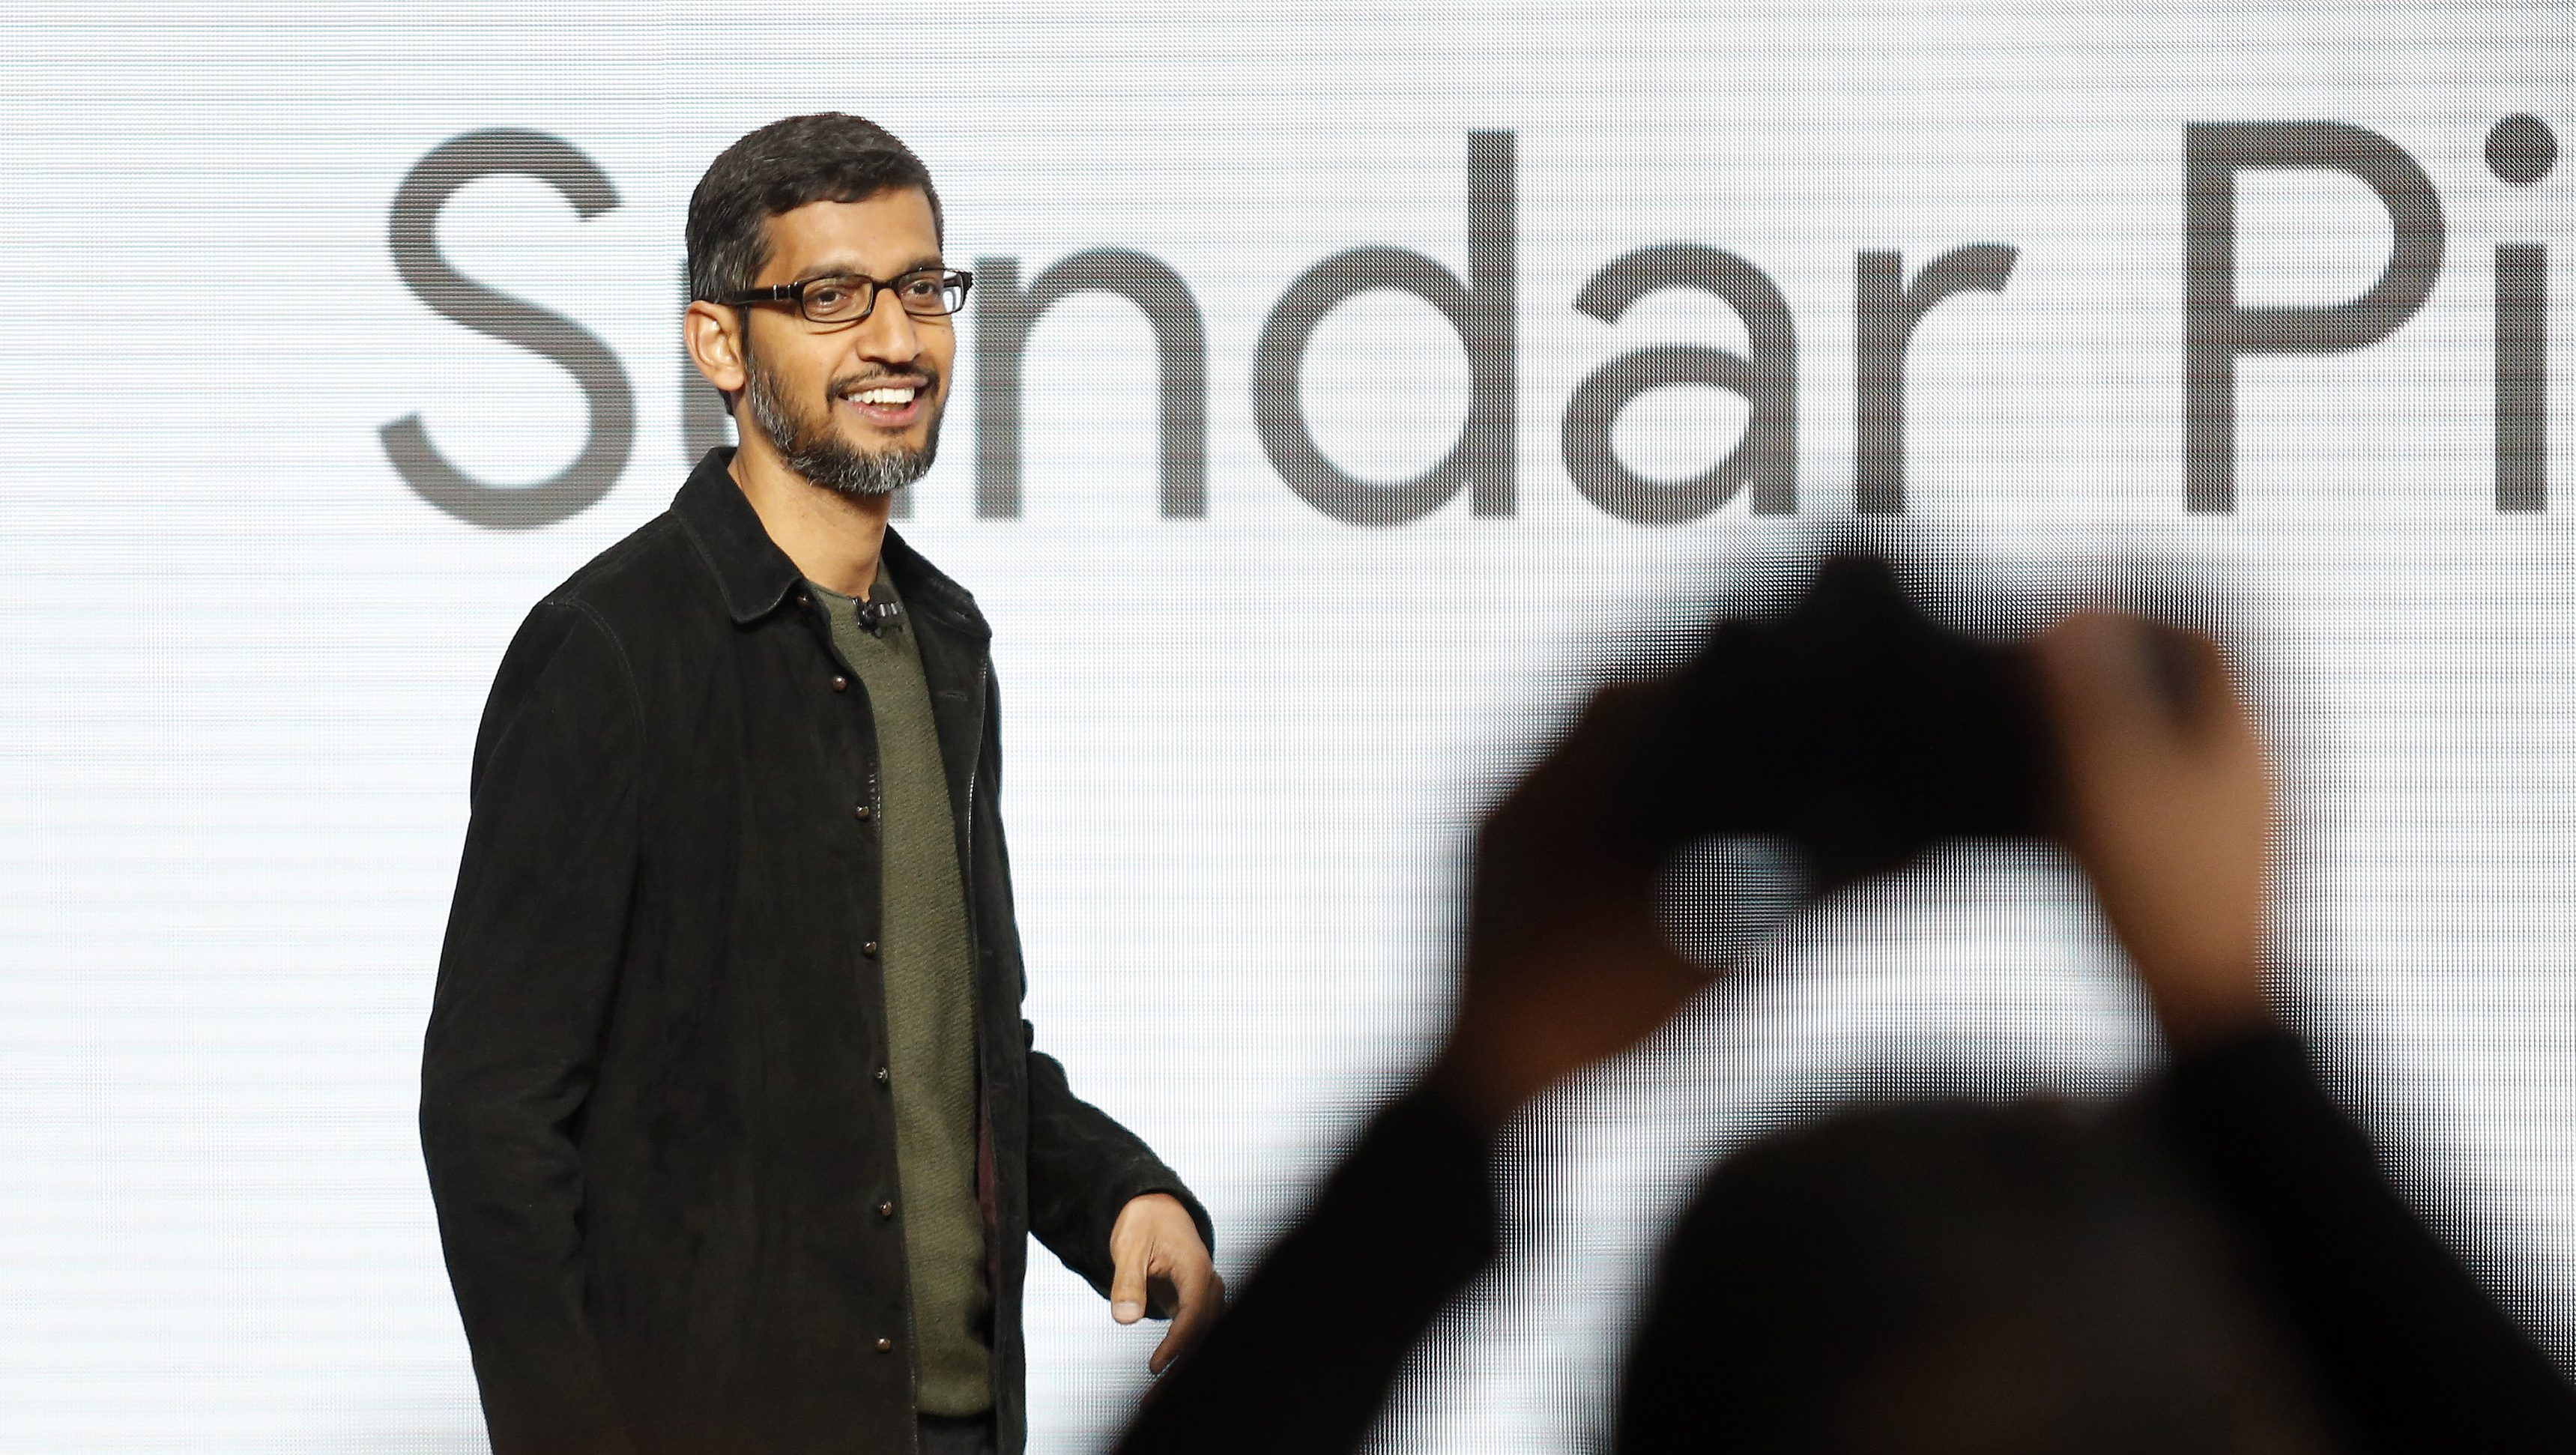 Google CEO Sundar Pichai takes the stage during the presentation of new Google hardware